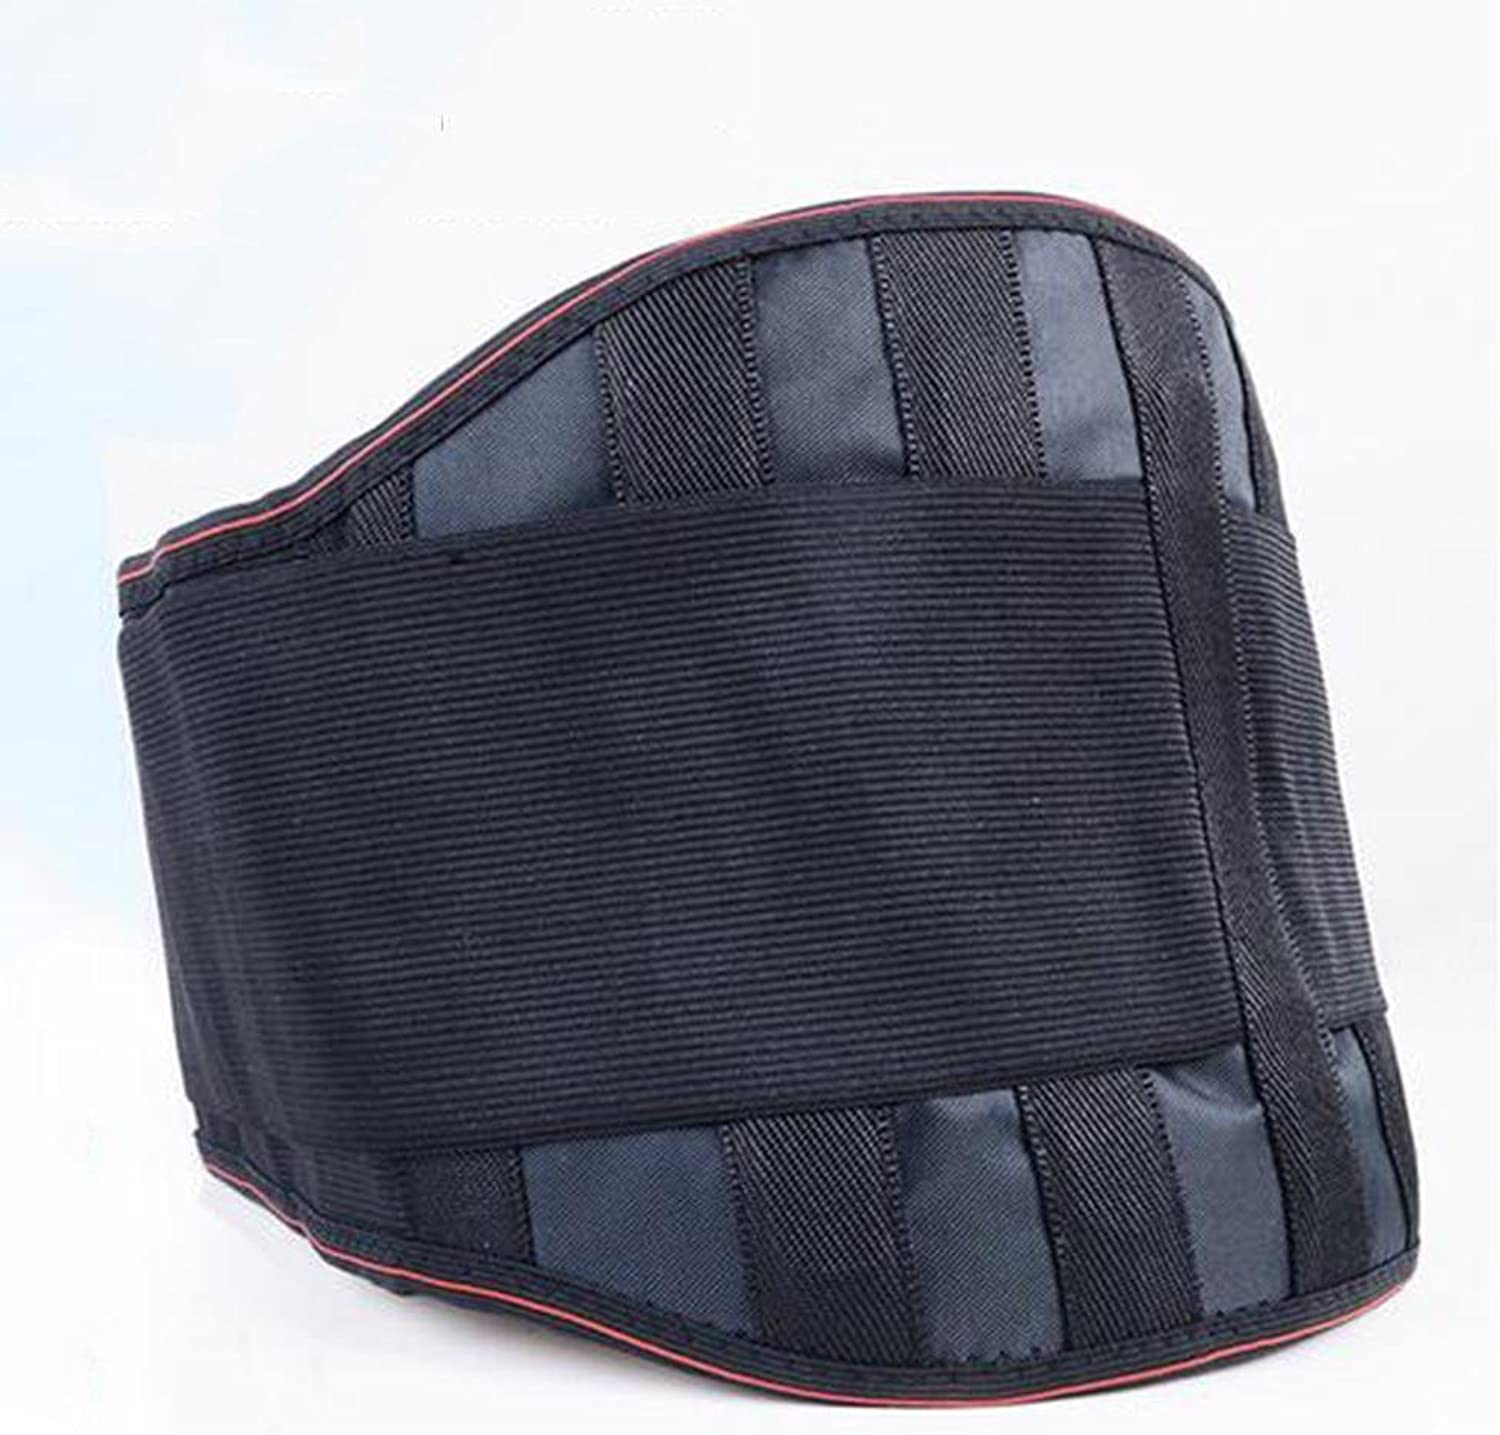 LPYAdjustable Lumbar Support, SelfHeating Lumbar Device Predection Belt Four Seasons Available, m